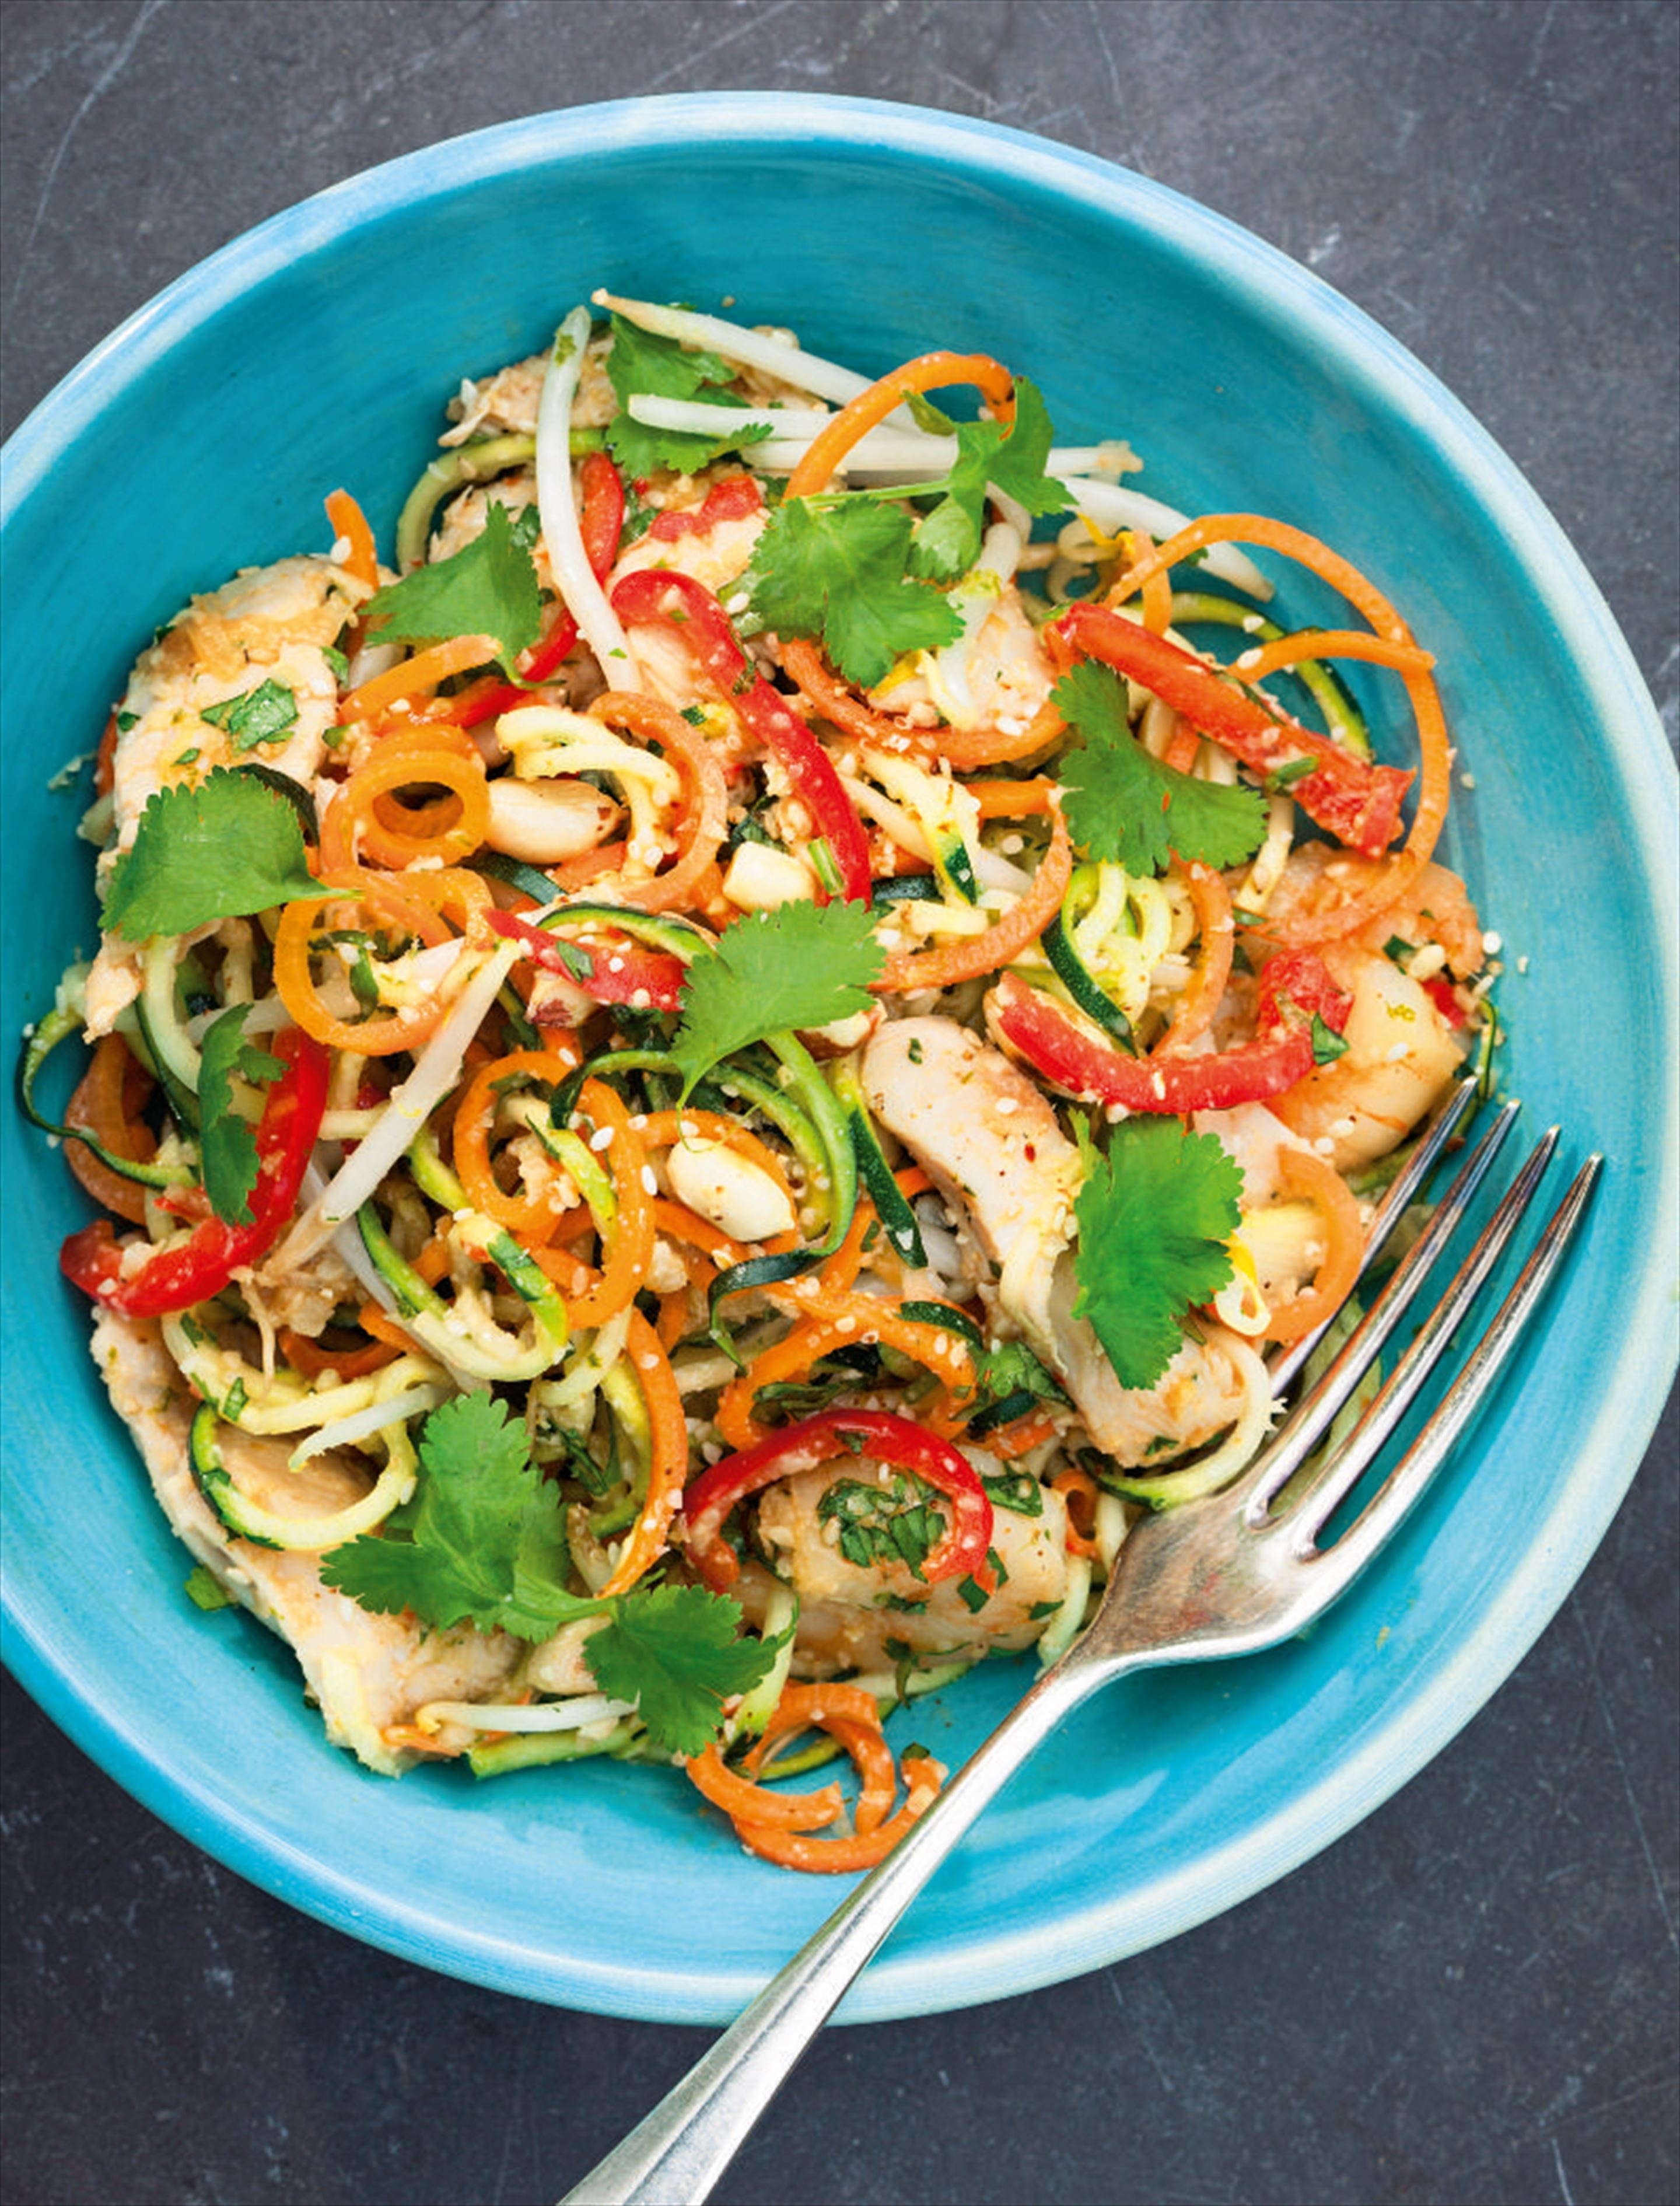 Warm Asian vegetable 'noodle' salad